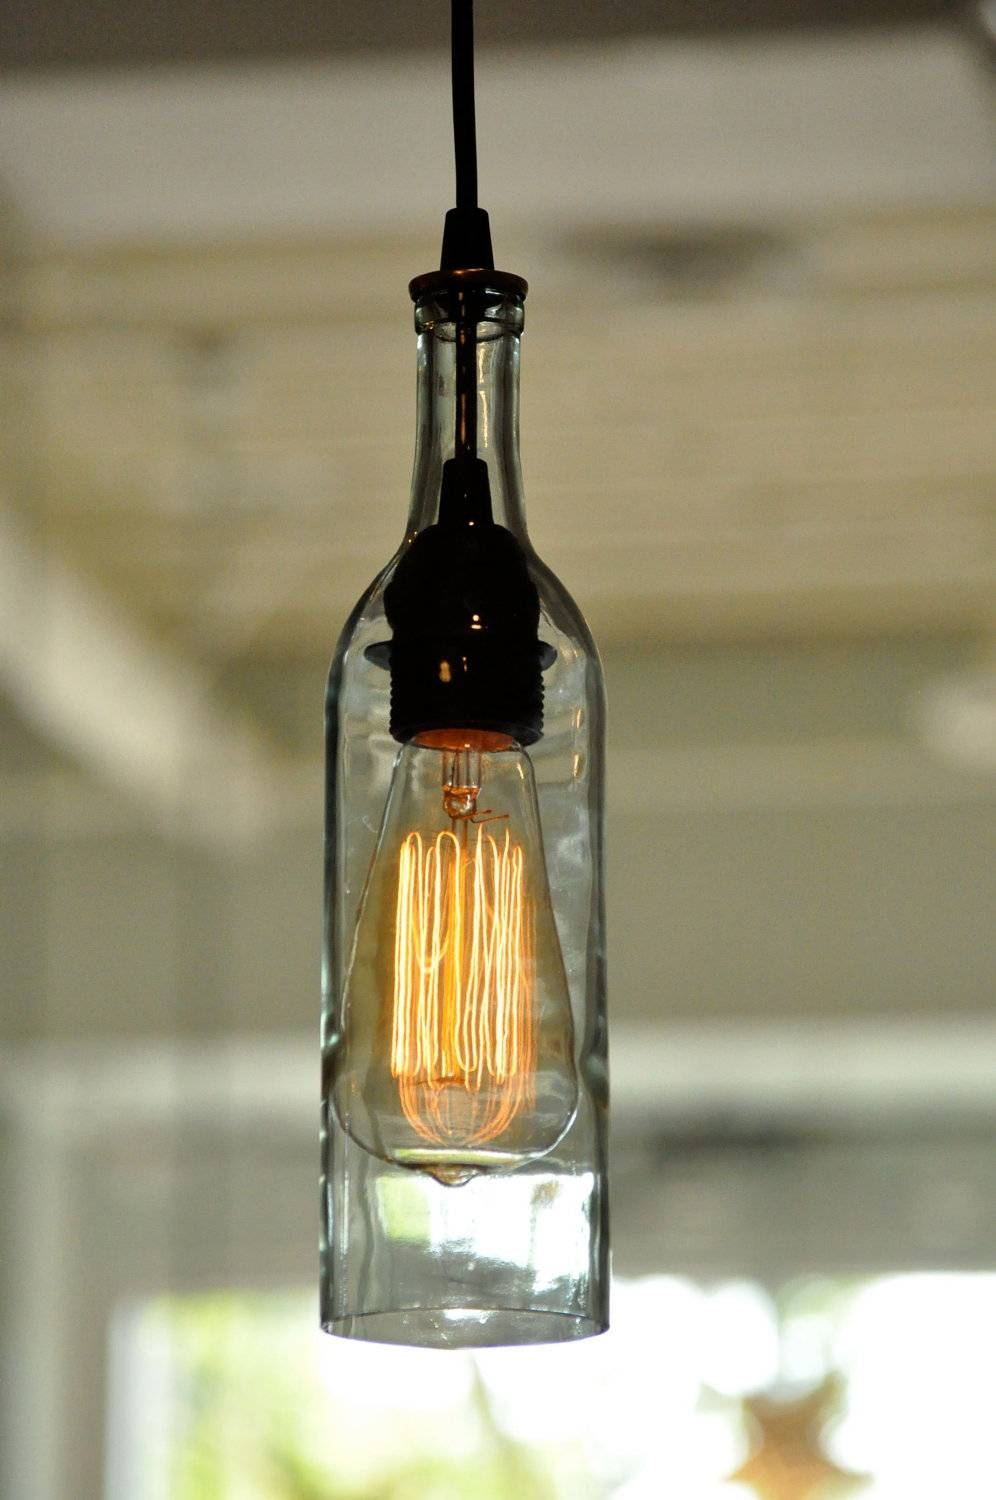 Bottle Pendant Lights - Baby-Exit pertaining to Wine Bottle Pendants (Image 1 of 15)